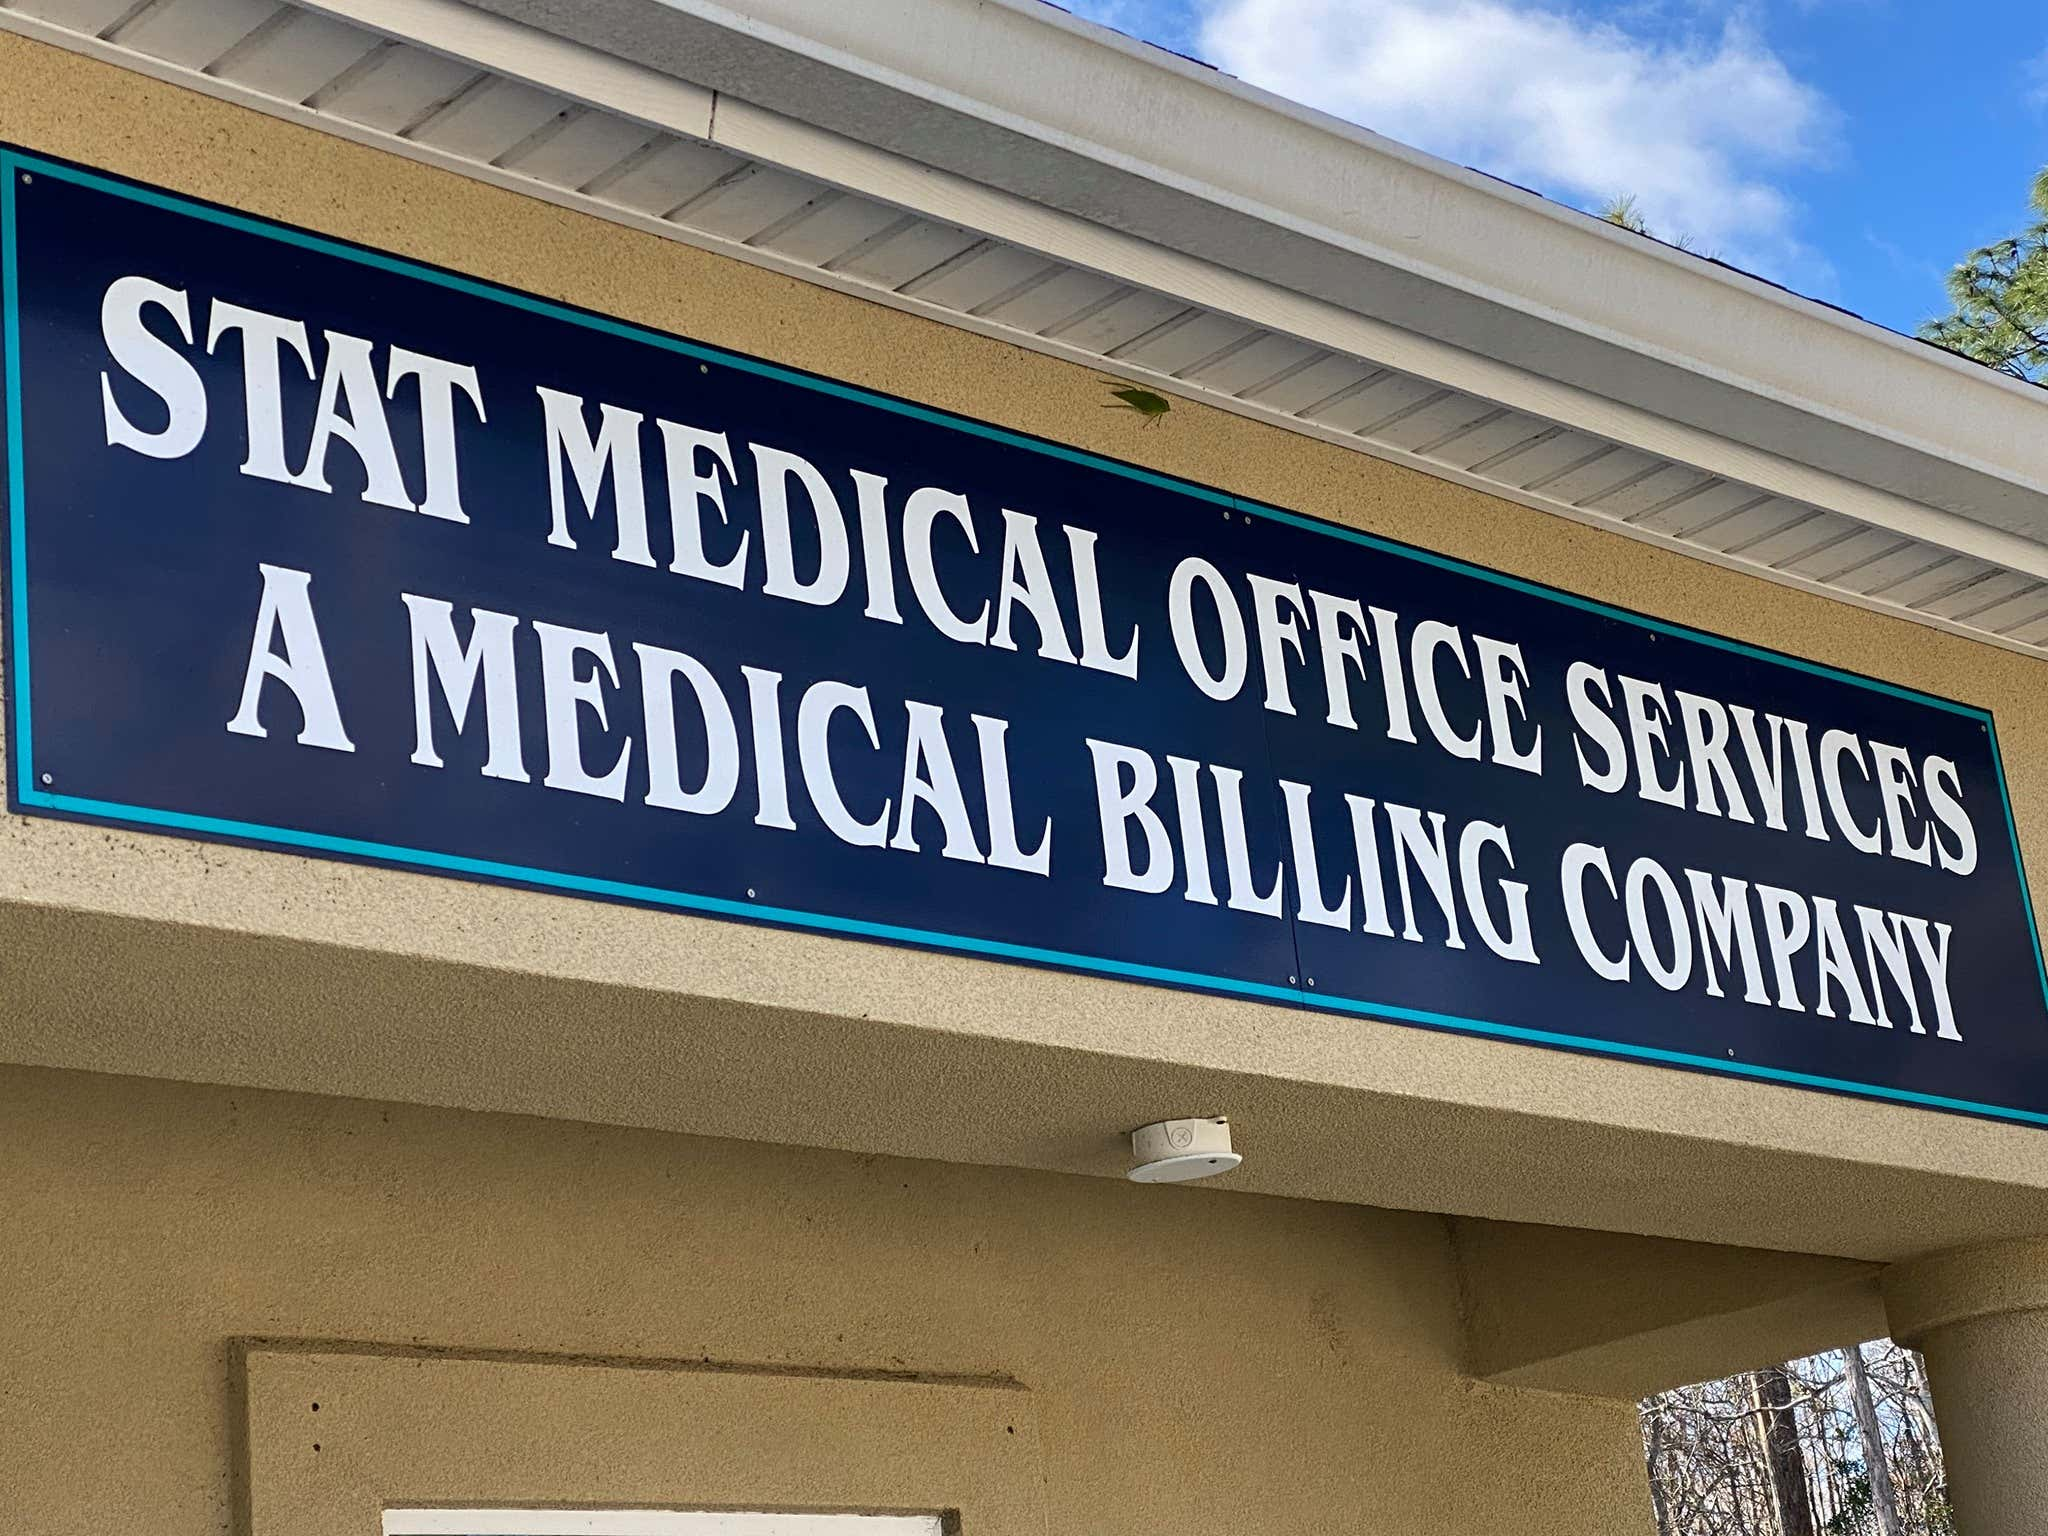 STAT Medical Office Services